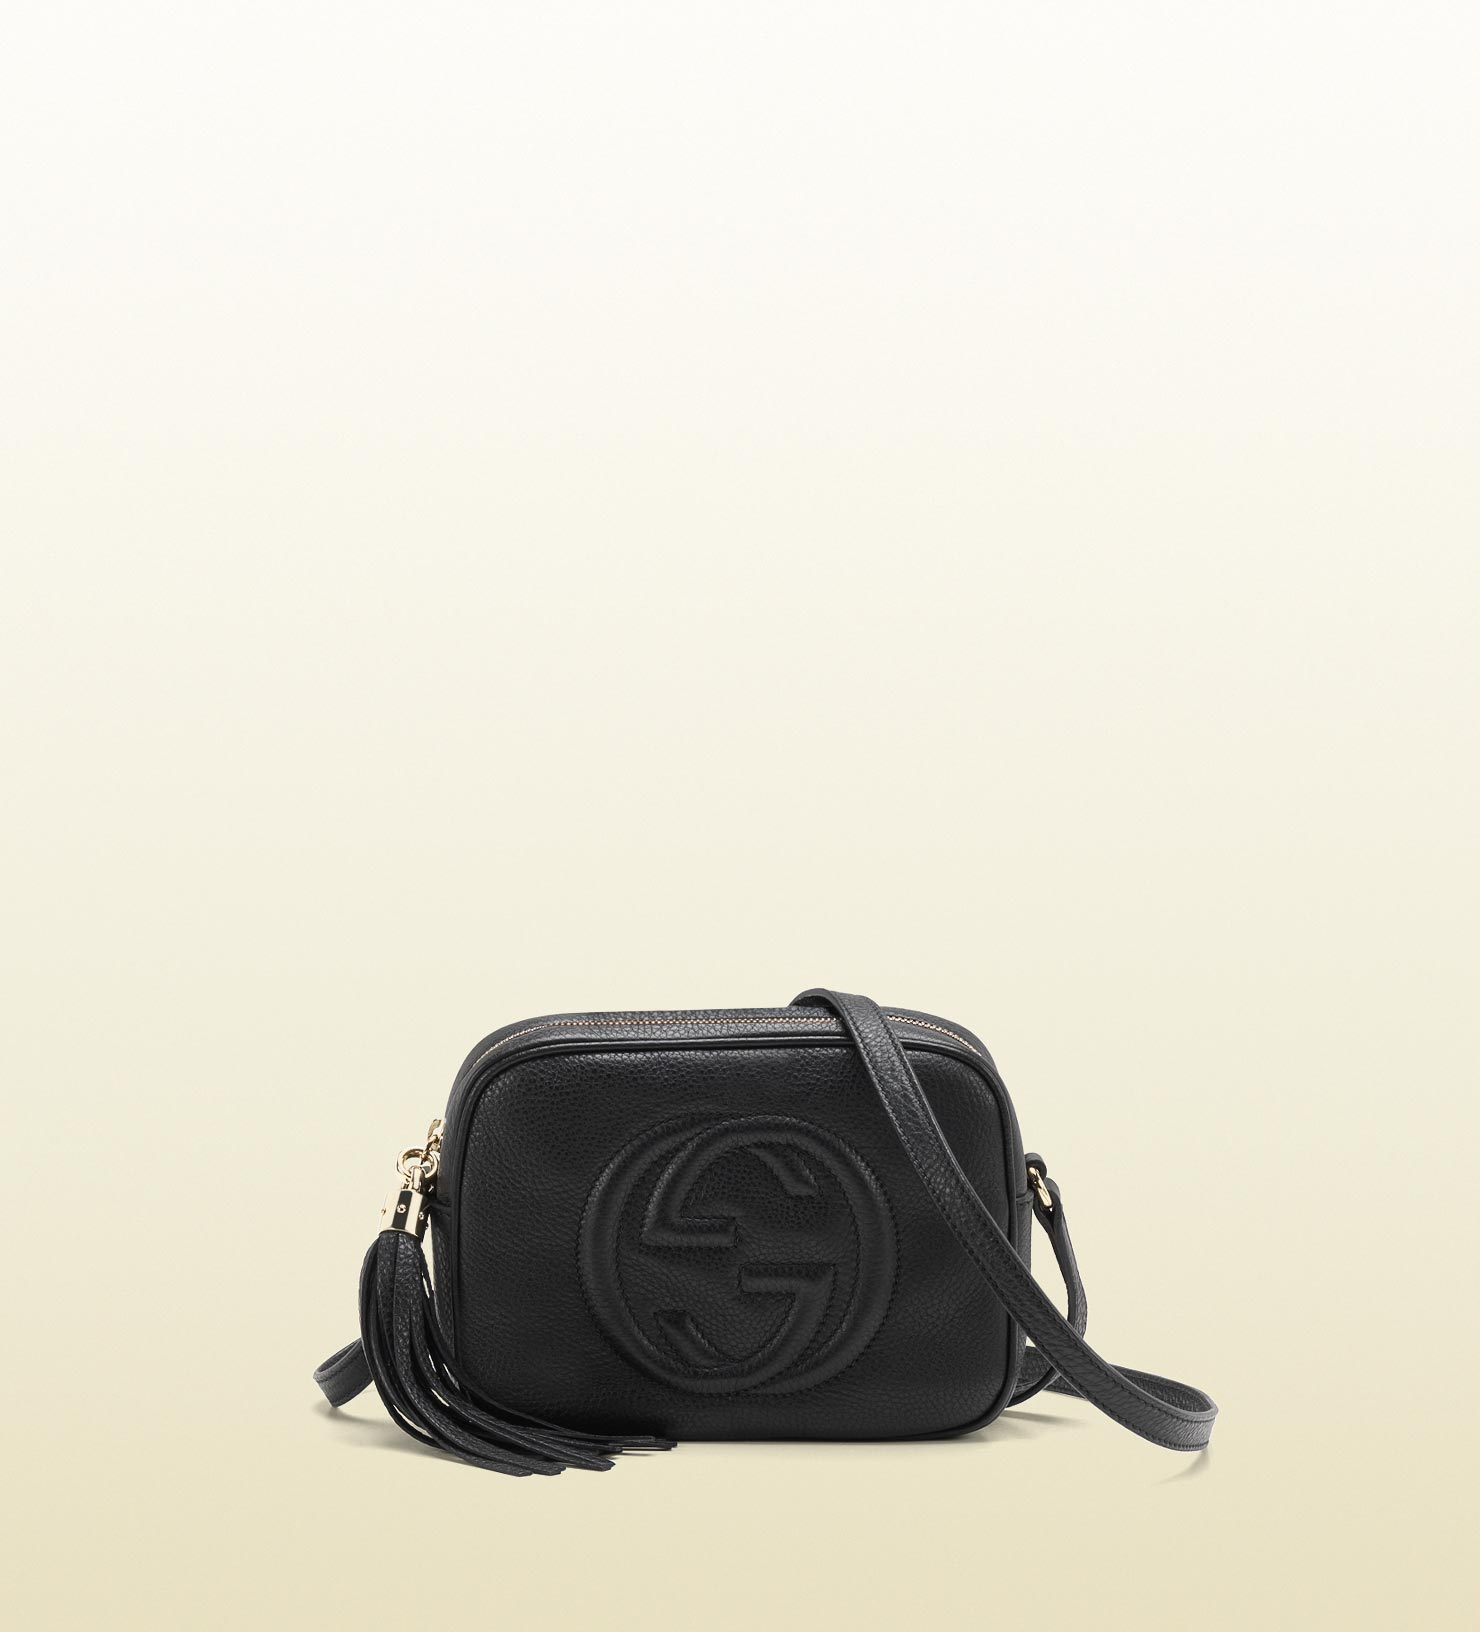 Gucci - disco bag soho 308364A7M0G1000